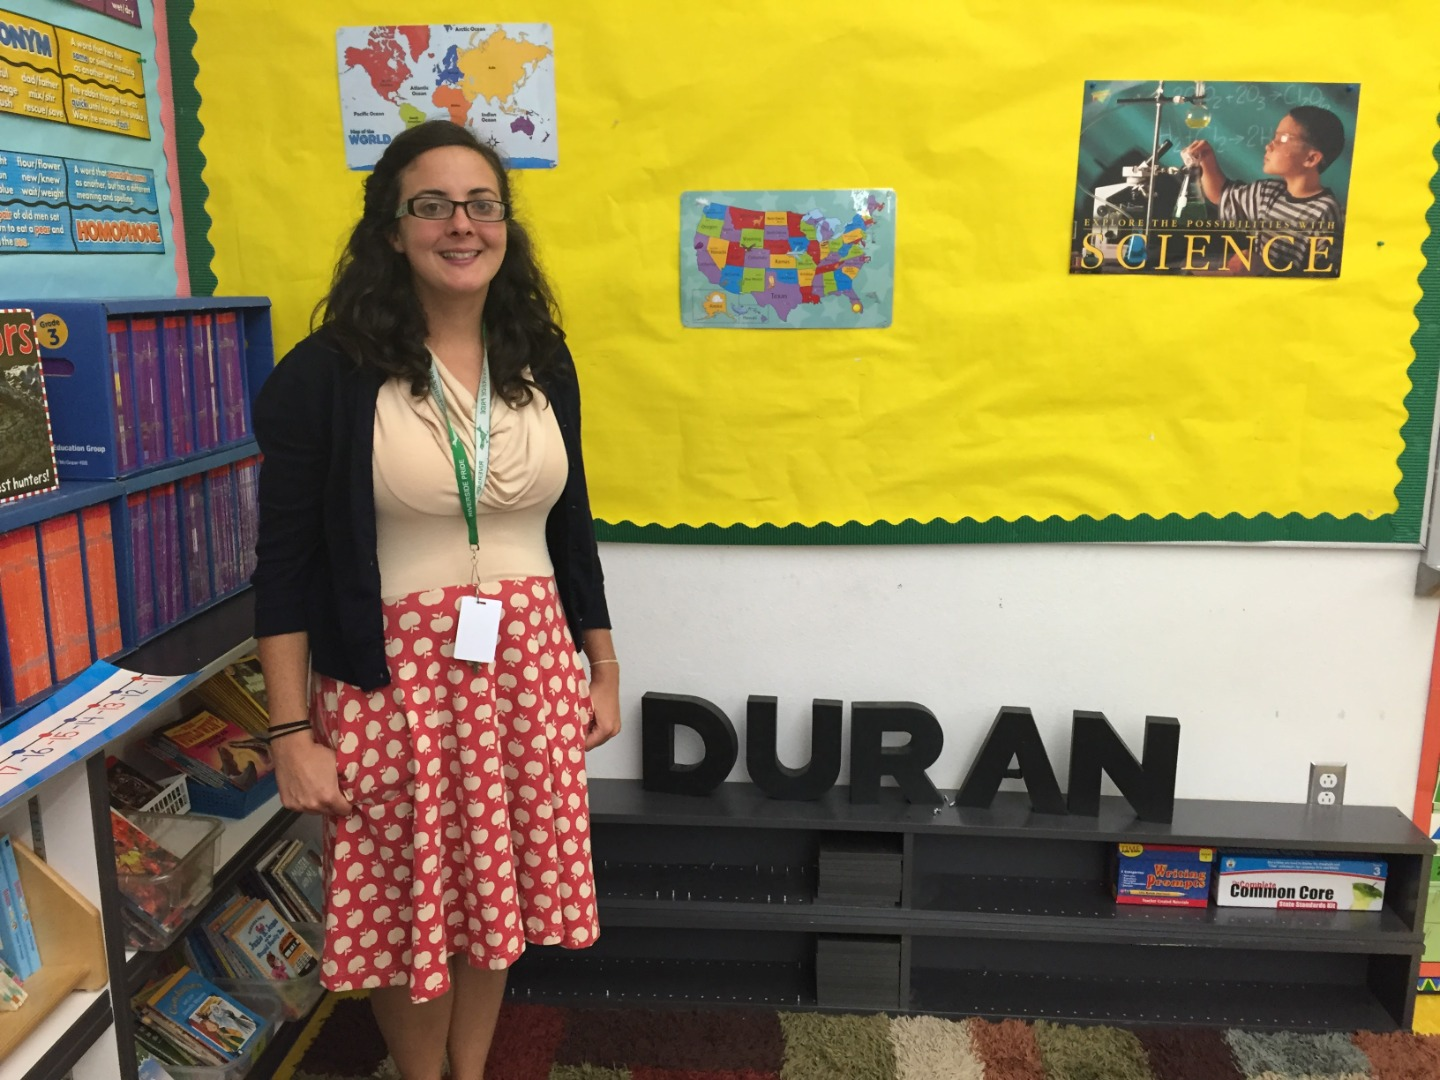 Ms. Duran in a classroom